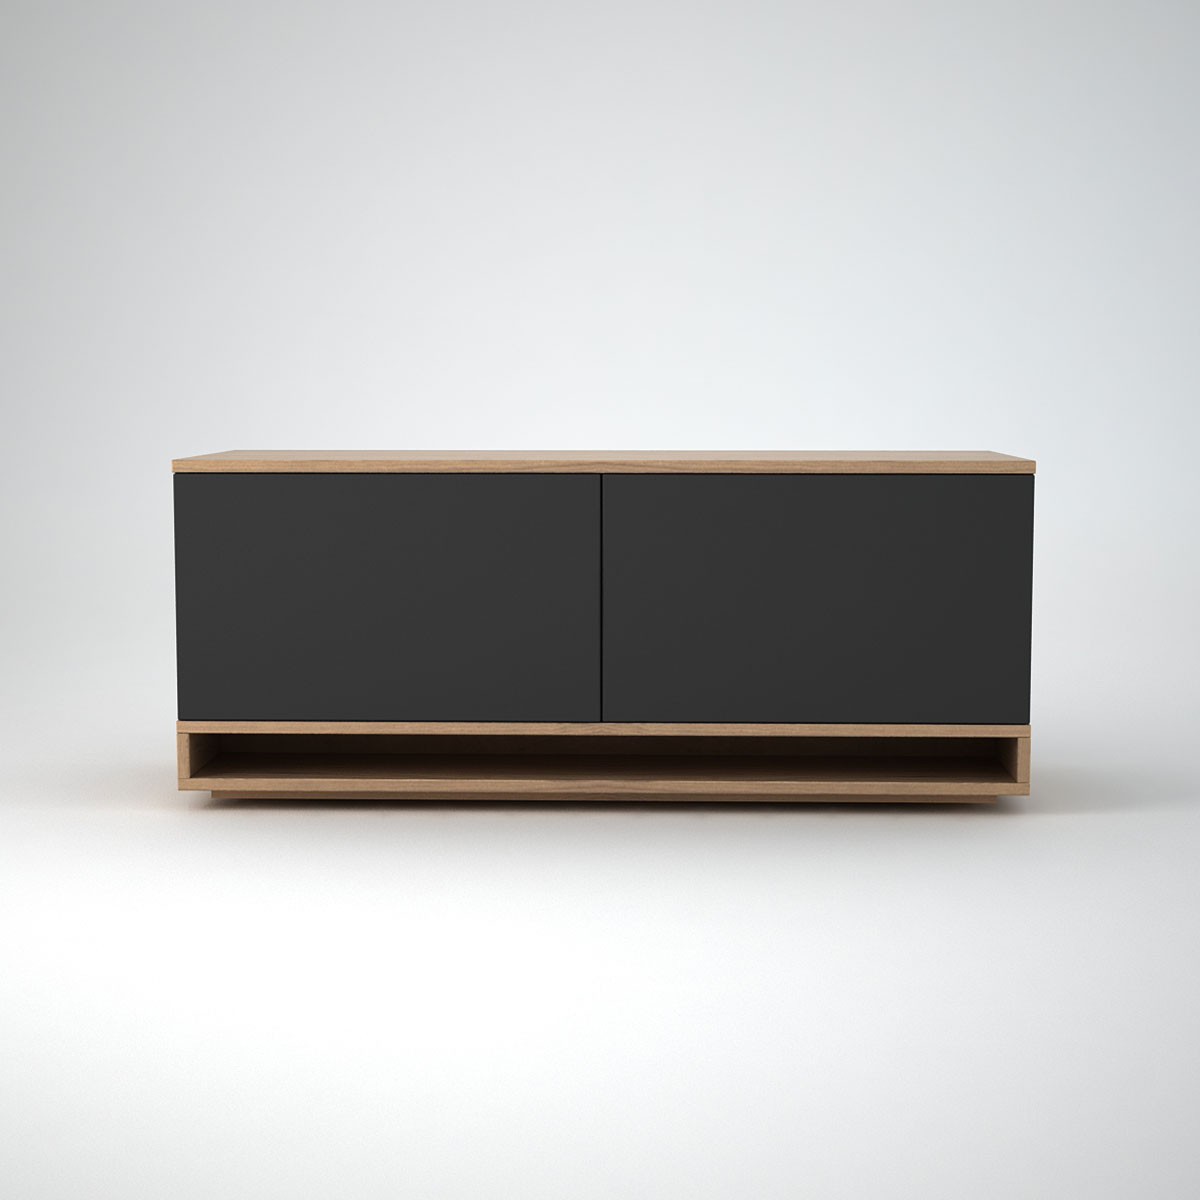 oak low modern sideboard - harlem